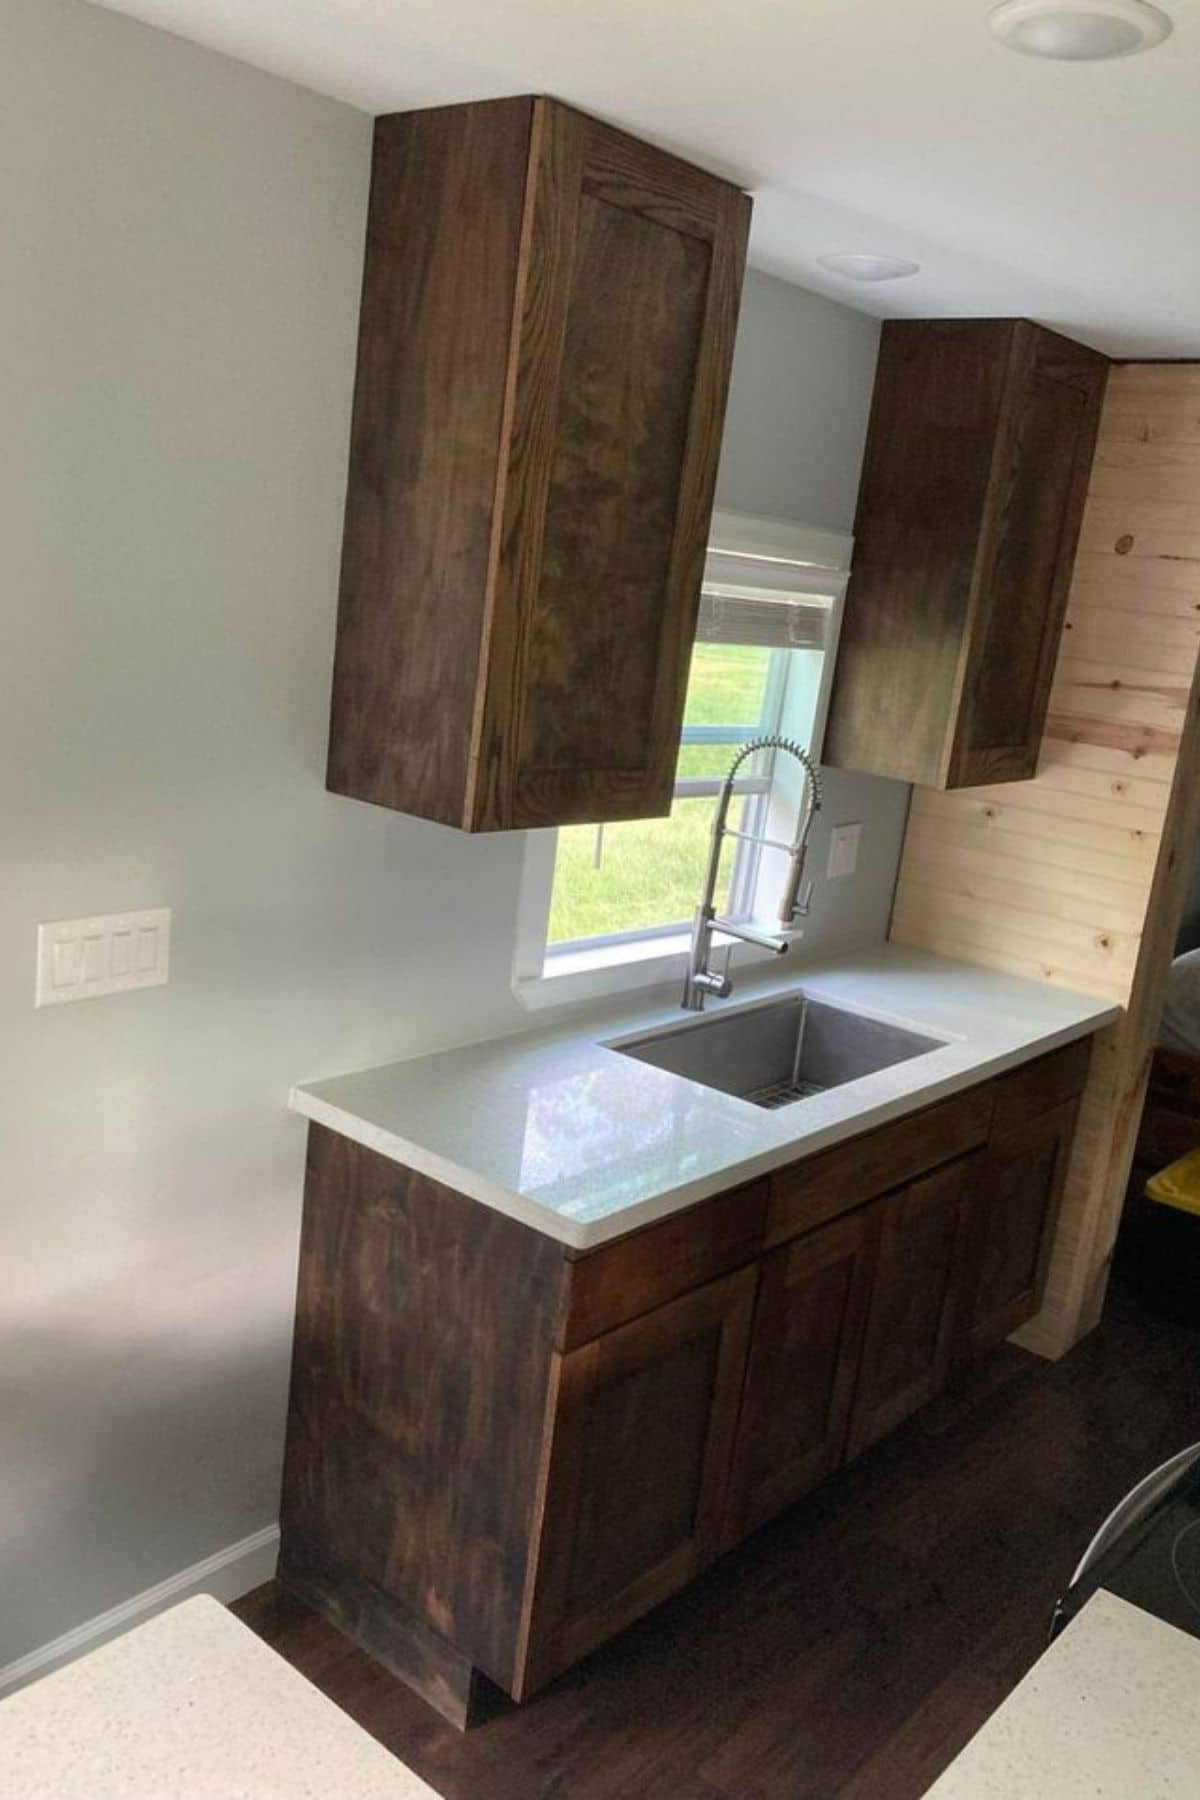 Kitchen counter against white wall with stainless steel sink